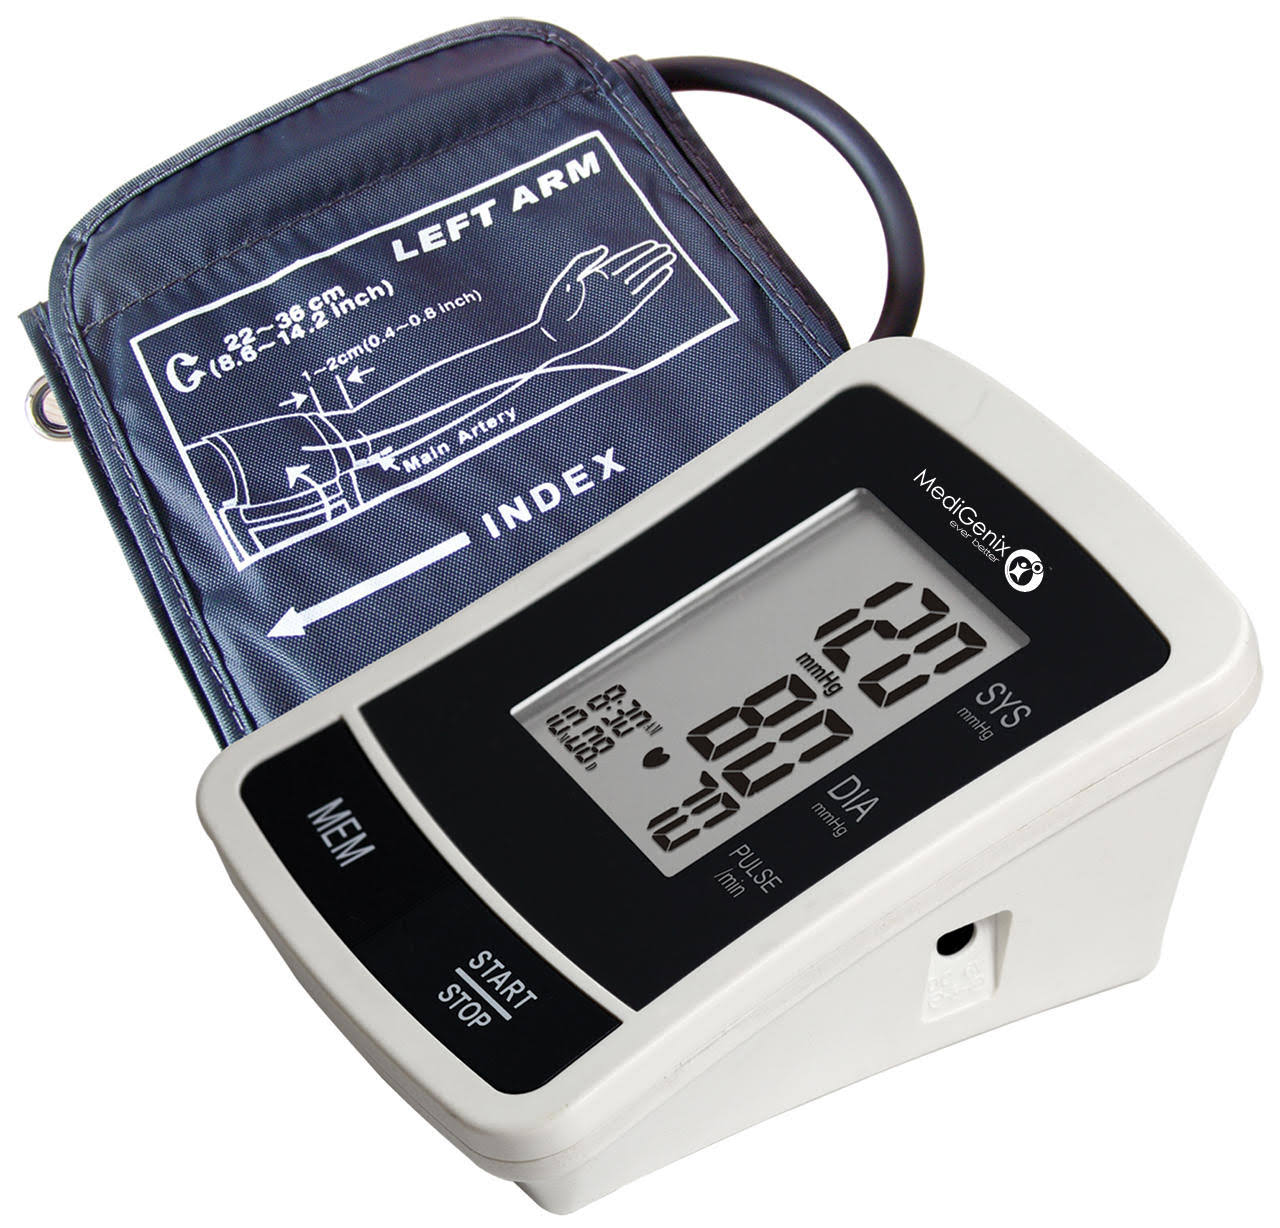 Medigenix MGX-1209 Automatic Blood Pressure Monitor